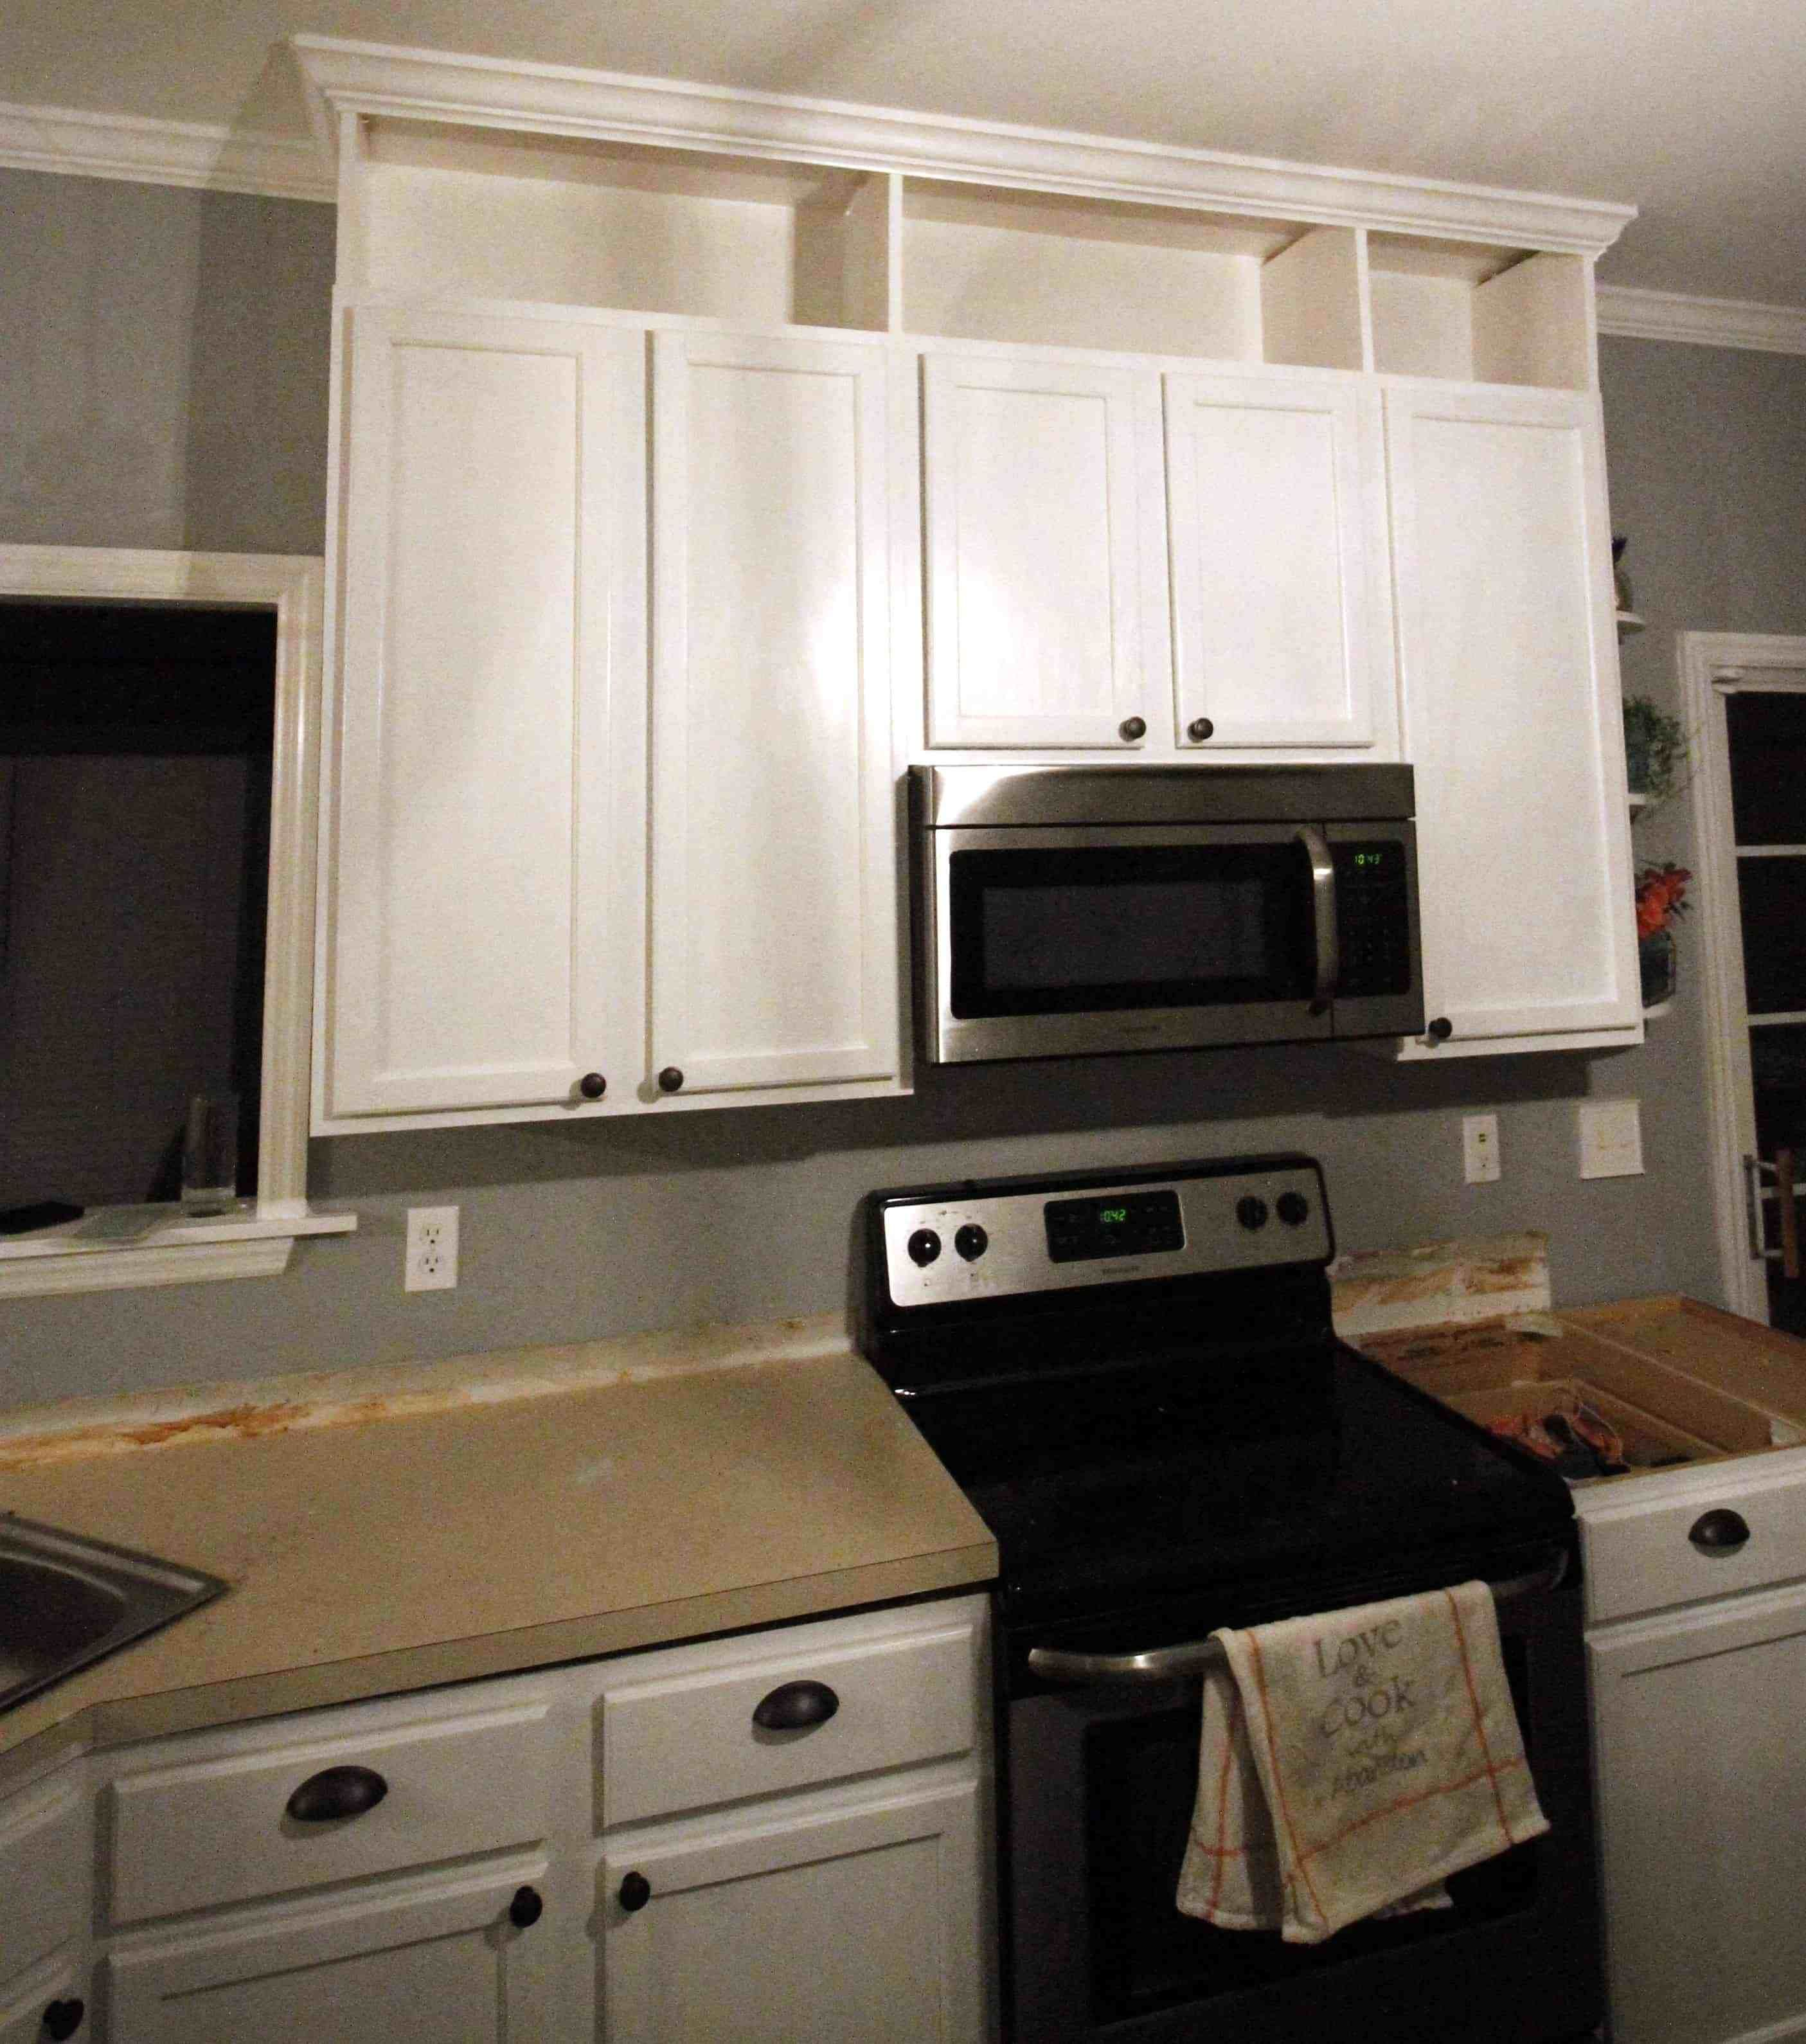 Extending Kitchen Cabinets To The Ceiling How to extend kitchen cabinets to the ceiling | Diy kitchen